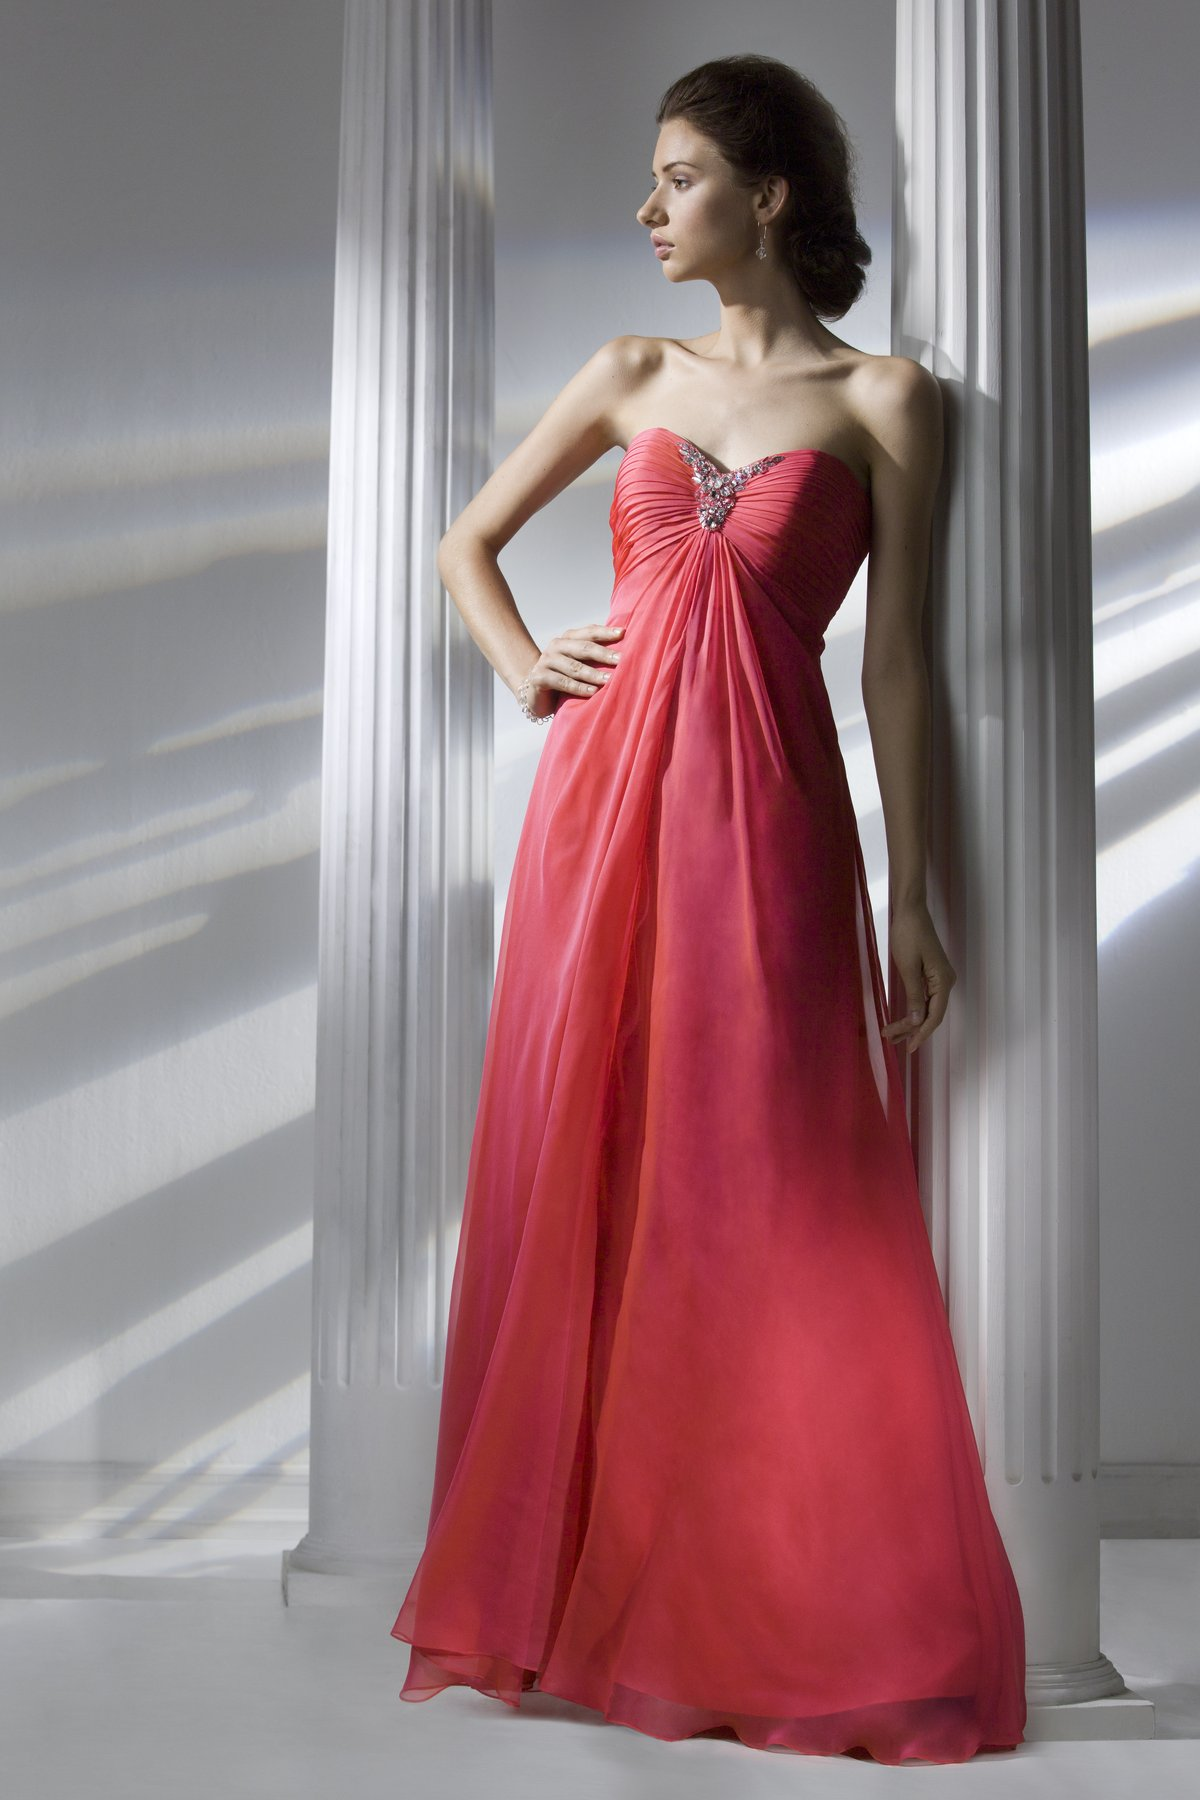 Bridesmaid Dresses | Special Occasion Dresses |  Style 651